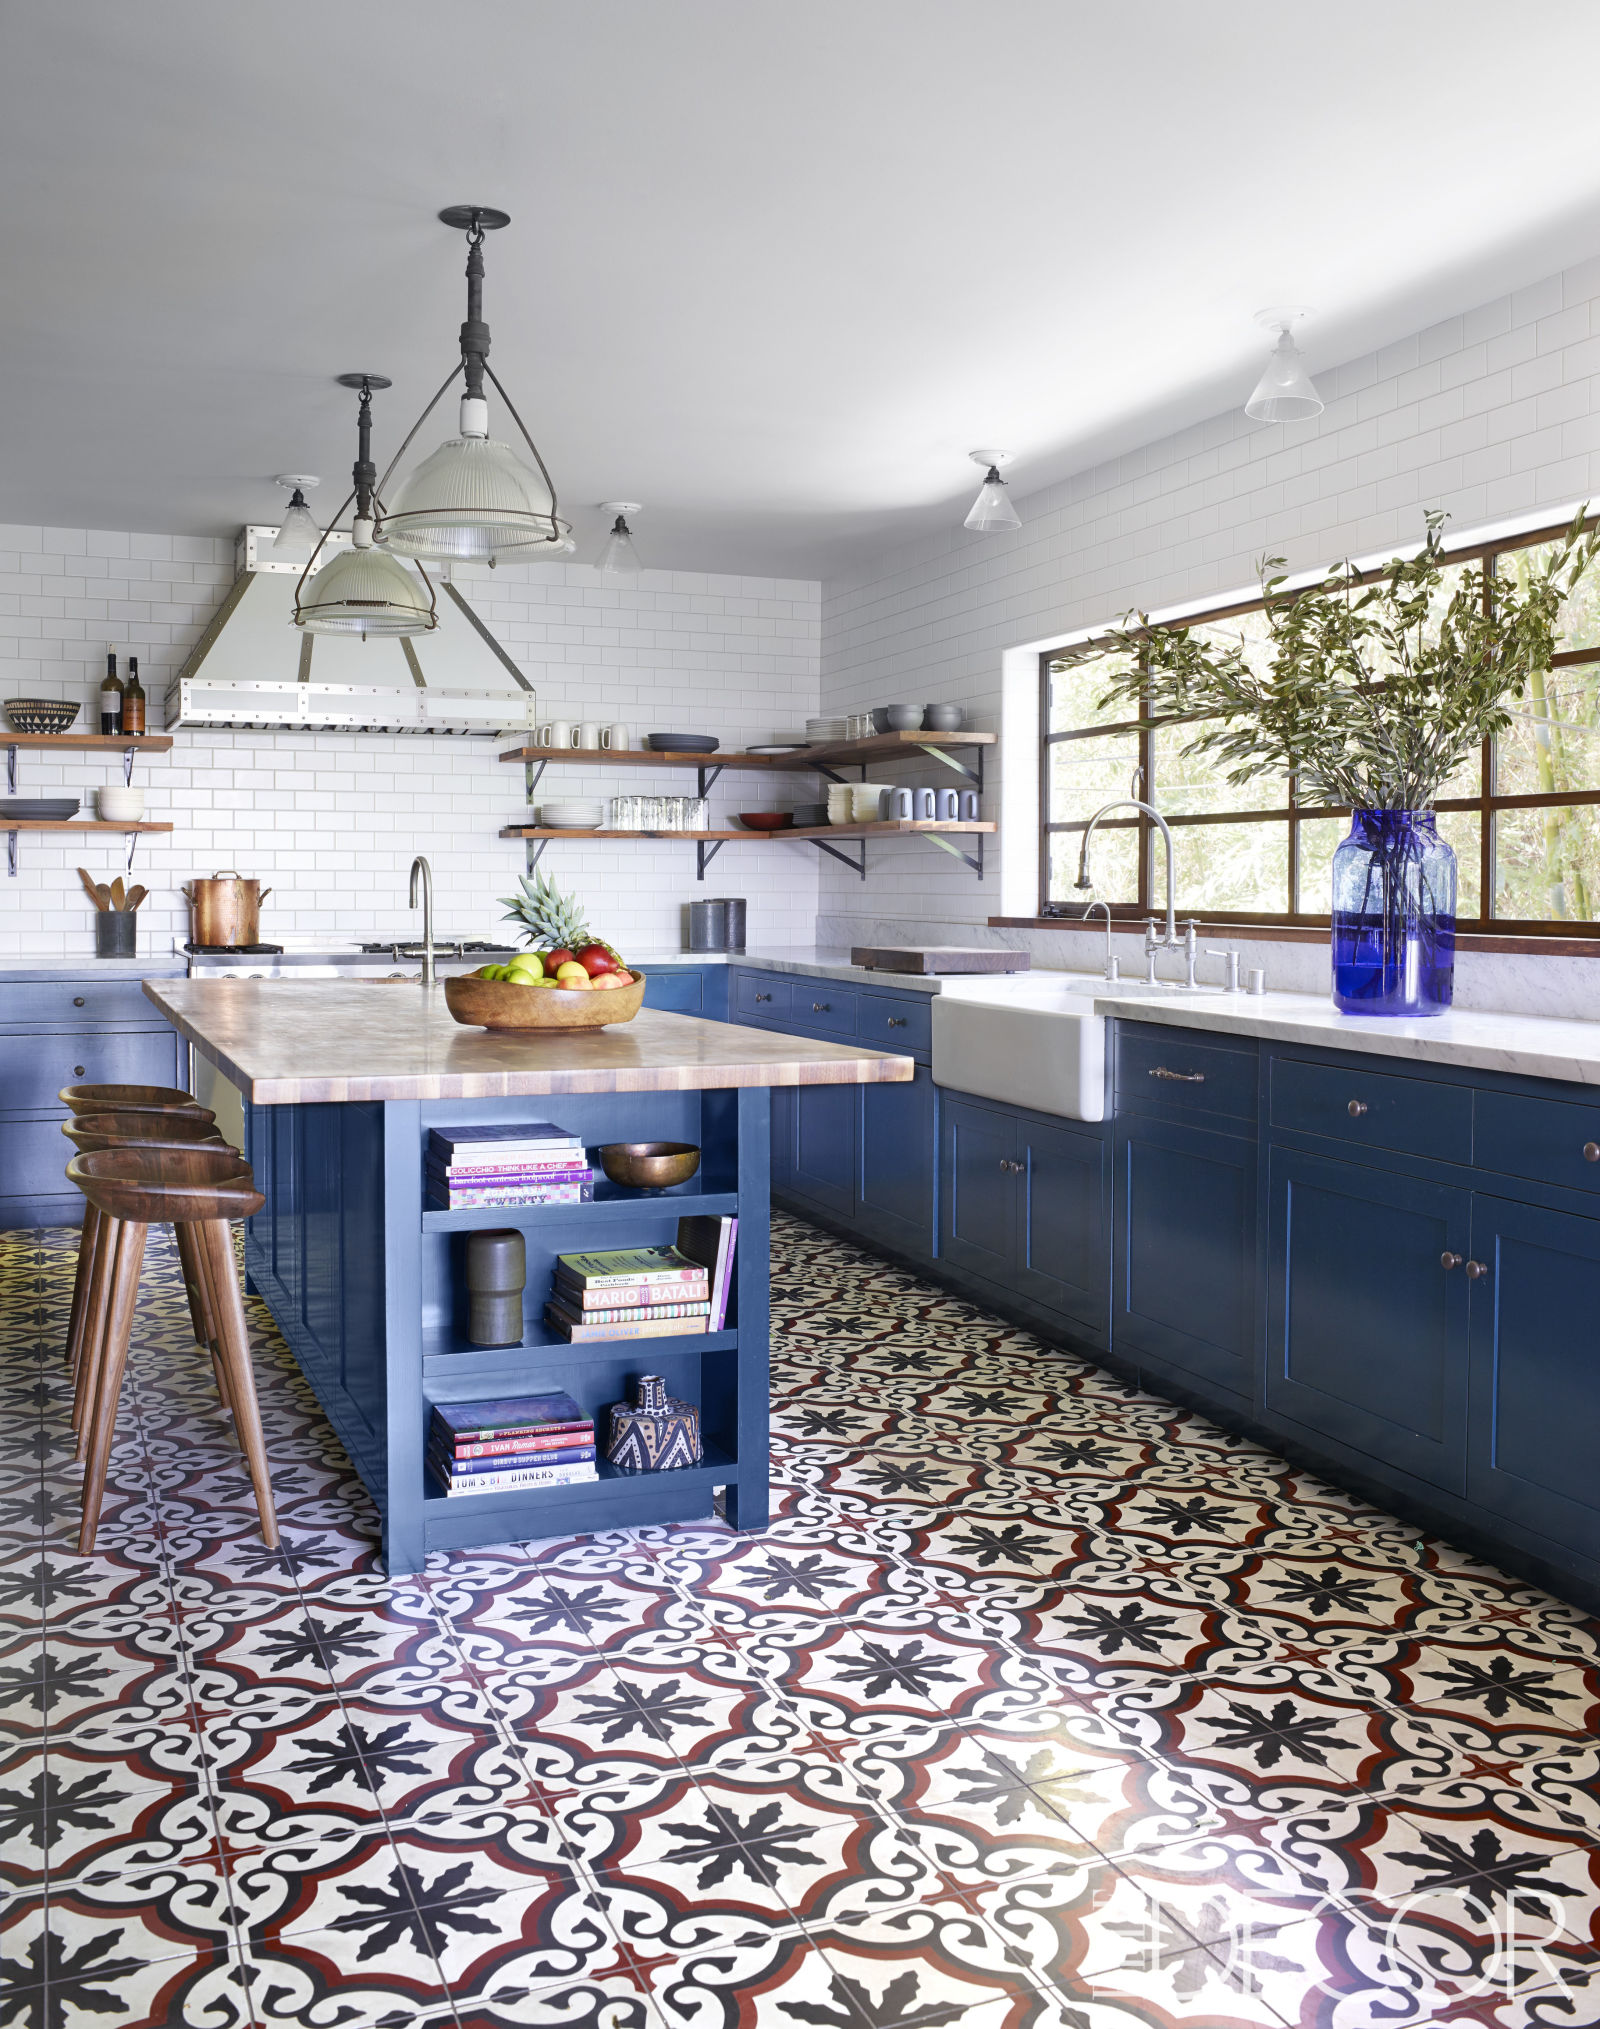 Unexpected Colorful Kitchens roundup from designer Lesley Myrick | Royal blue kitchen cabinets with Moroccan tile floor